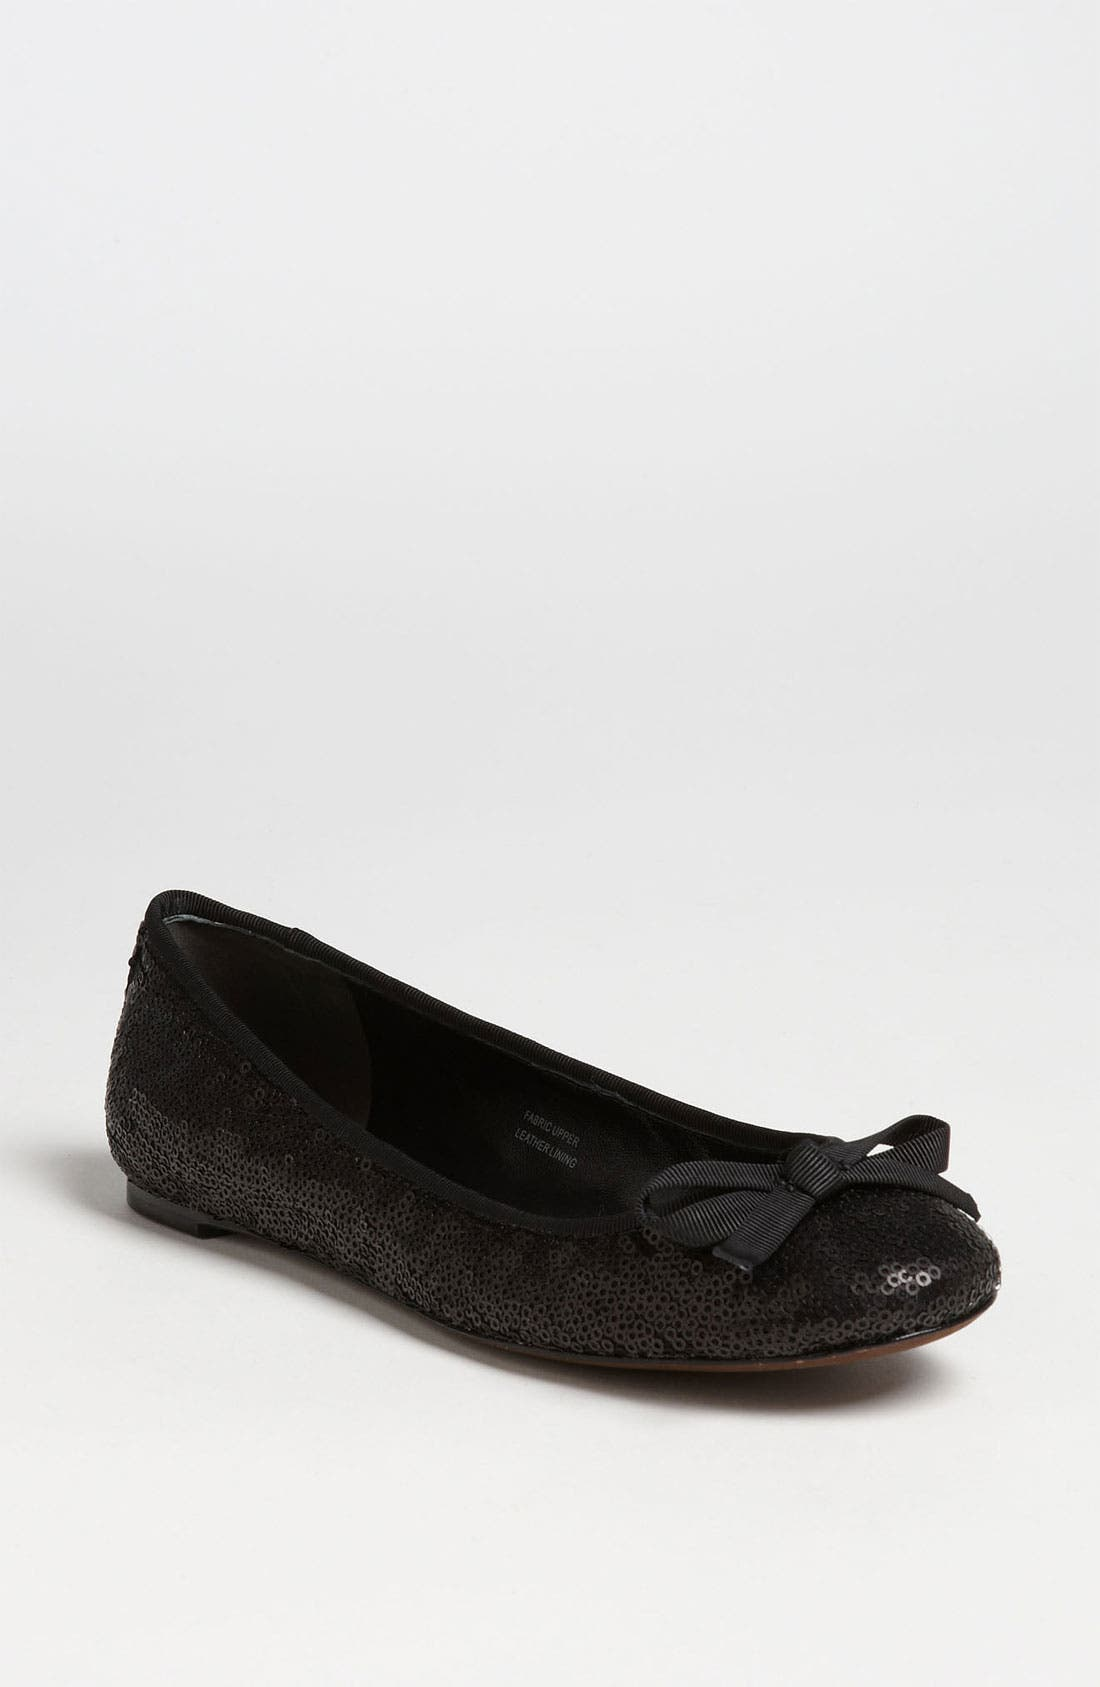 Alternate Image 1 Selected - Vera Wang Footwear 'Laetitia' Flat